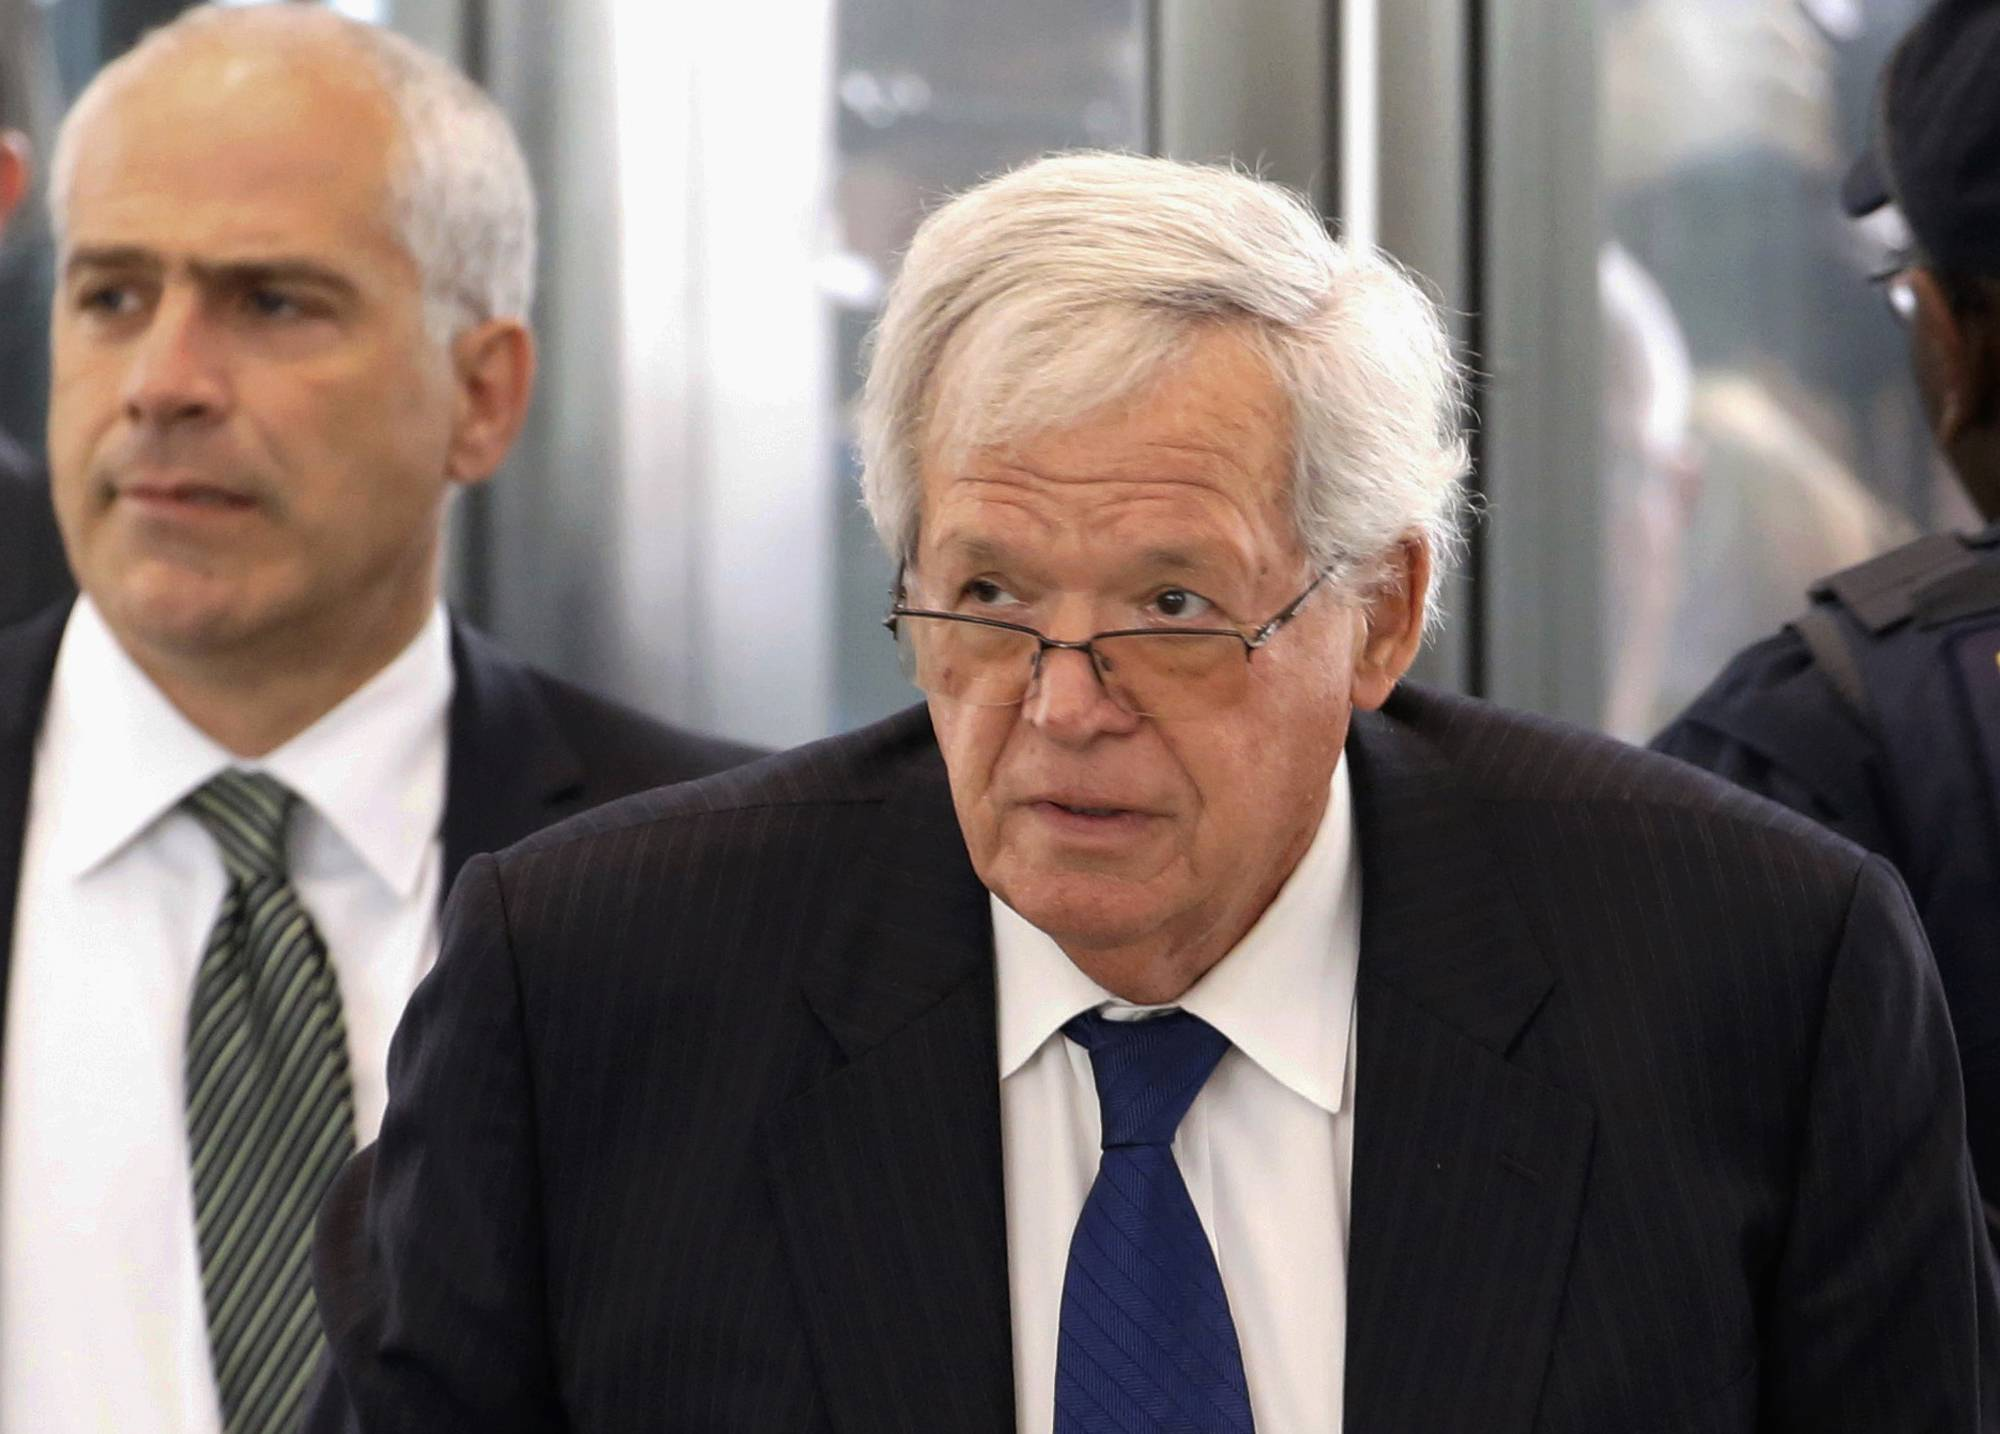 Hastert defense: Motel sex abuse claims 'ambiguous'